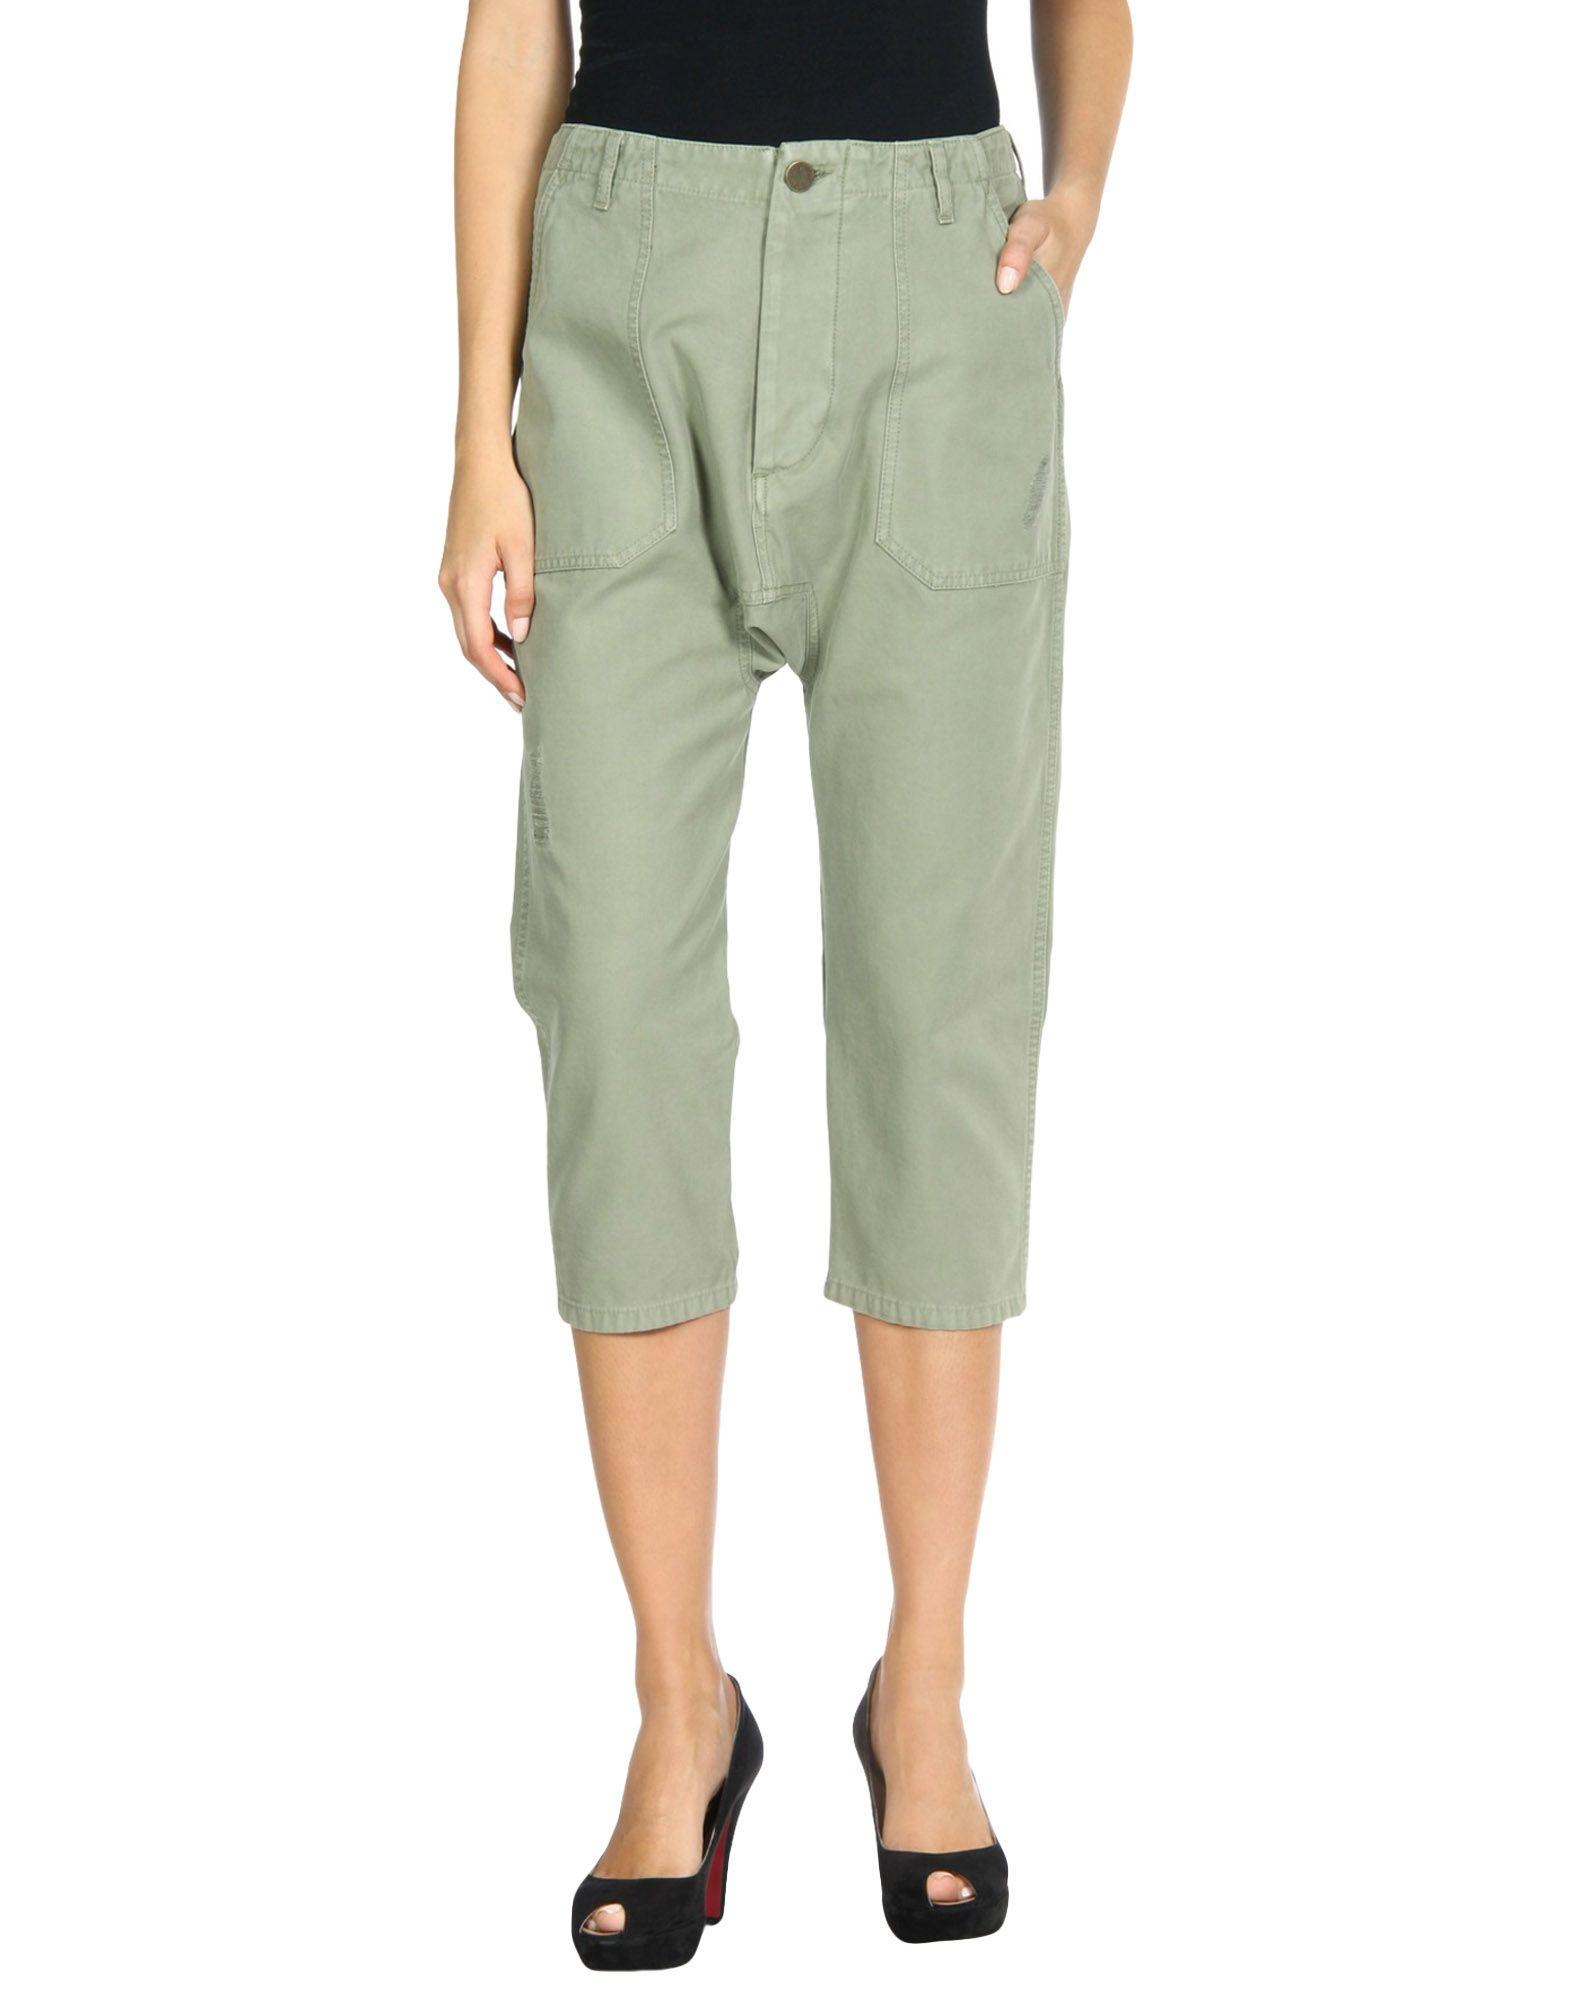 Etienne Marcel Cropped Pants & Culottes In Light Green